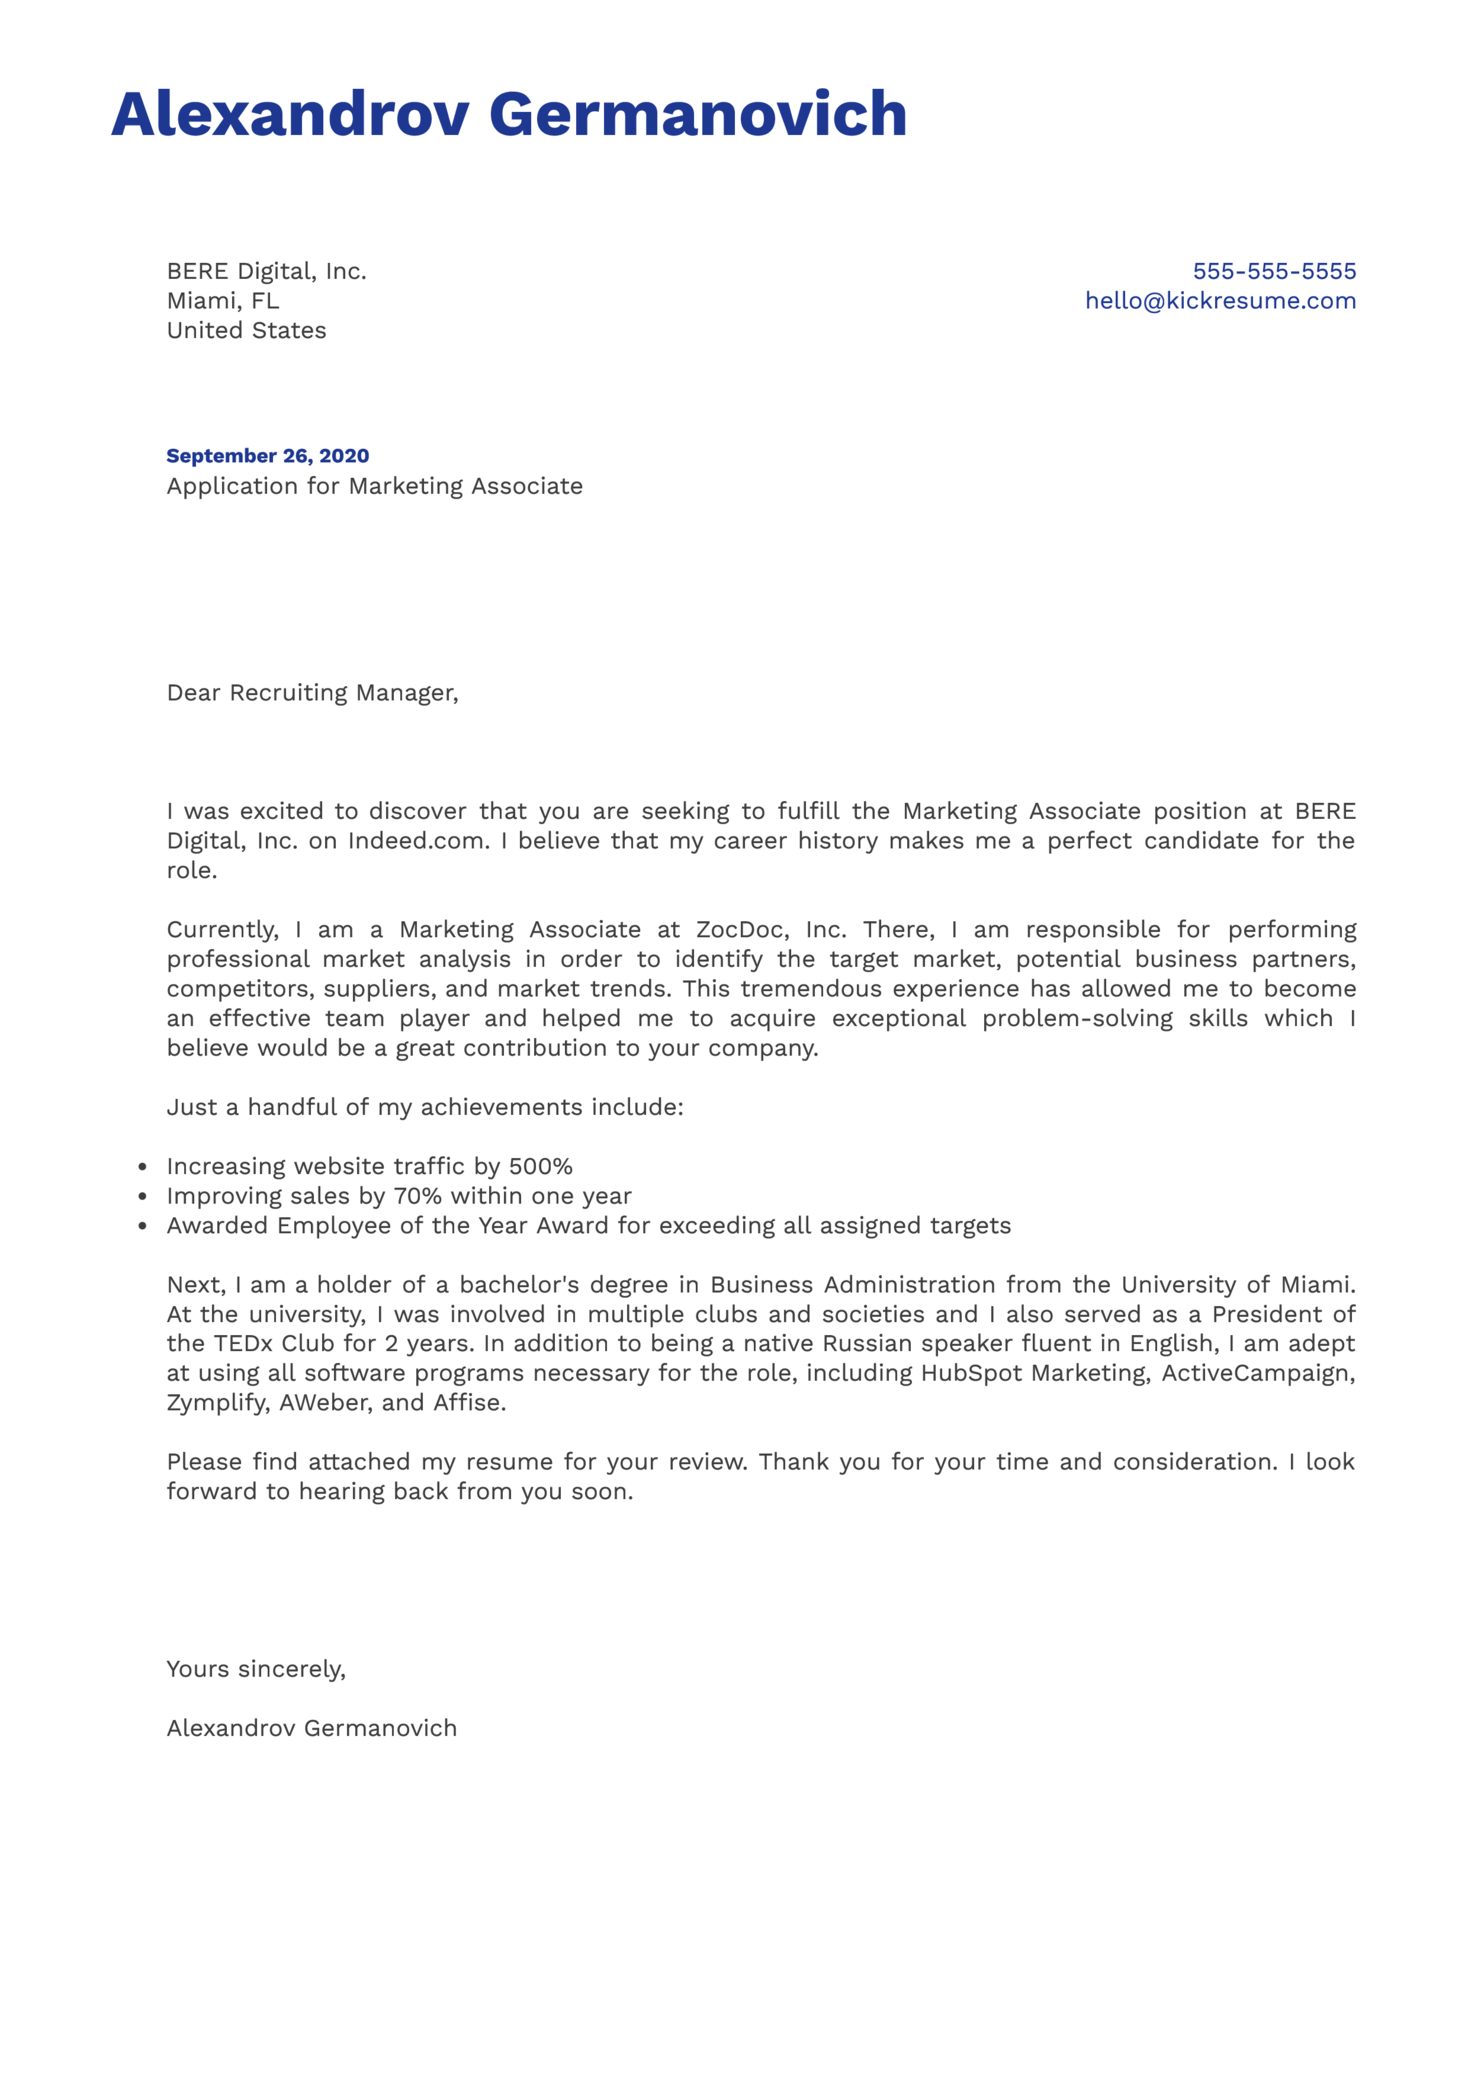 Marketing Associate Cover Letter Example